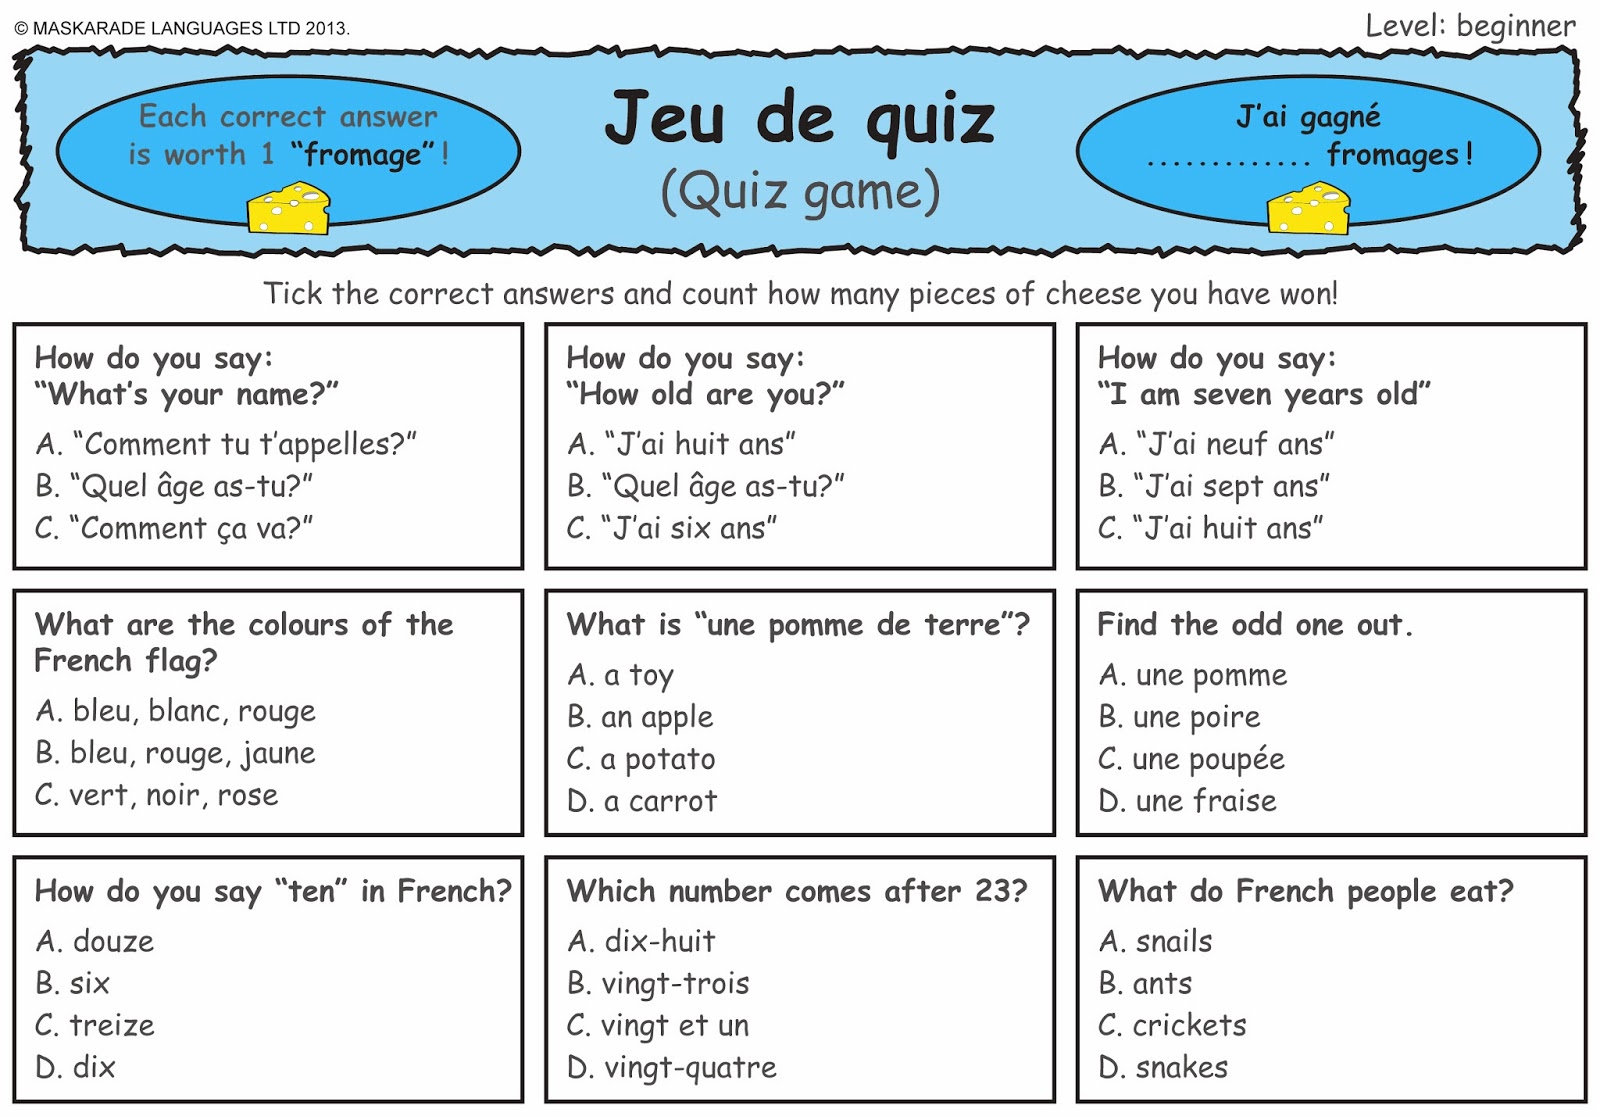 Worksheet French Worksheets For Beginners maskarade languages french quiz level beginner bitesize ks2 1 learn with our fun each correct answer is worth fromage